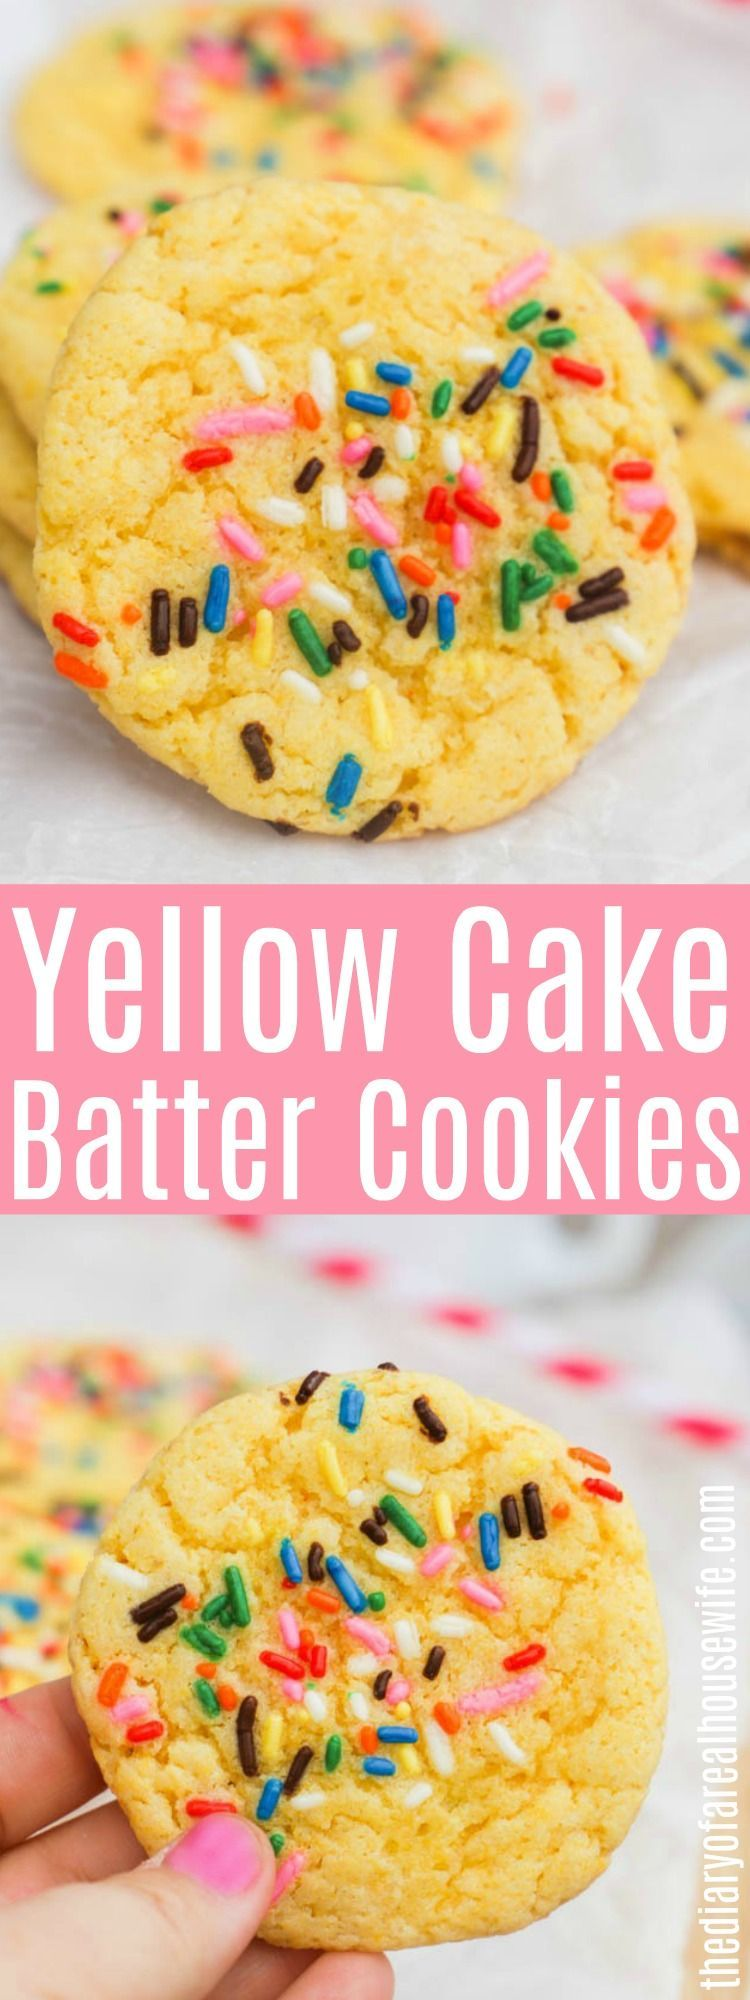 Yellow Cake Batter Cookies • The Diary of a Real Housewife